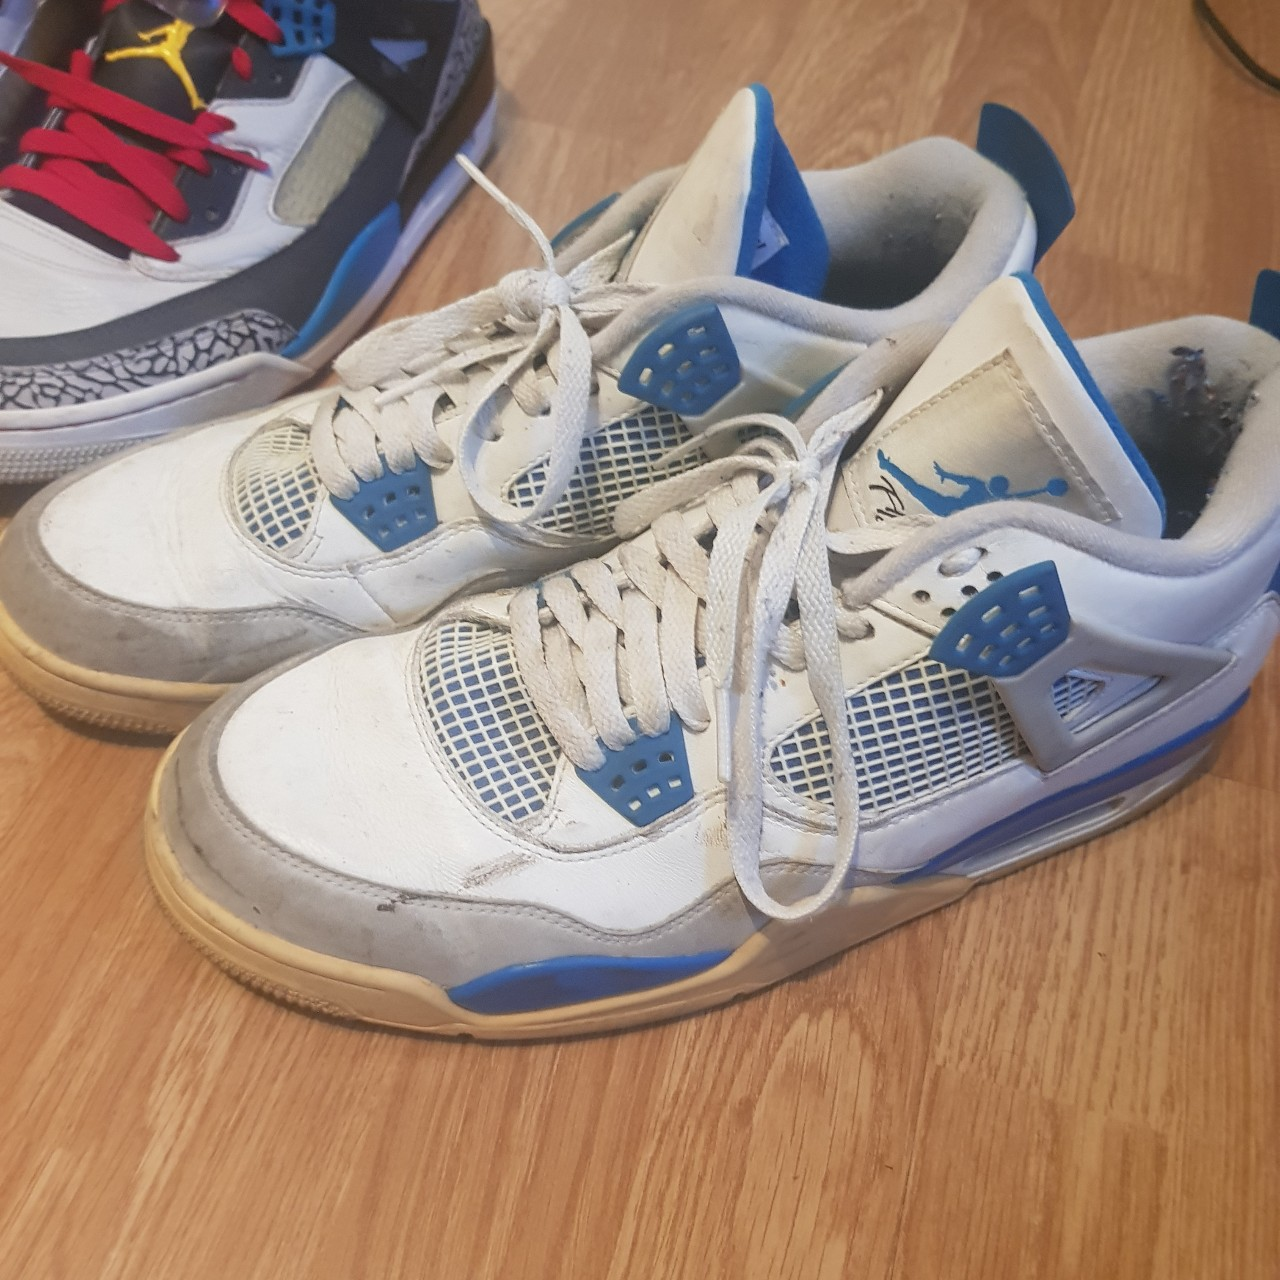 on sale 09f19 76487 Jordan 4s Military Blue (2012 release) - Depop